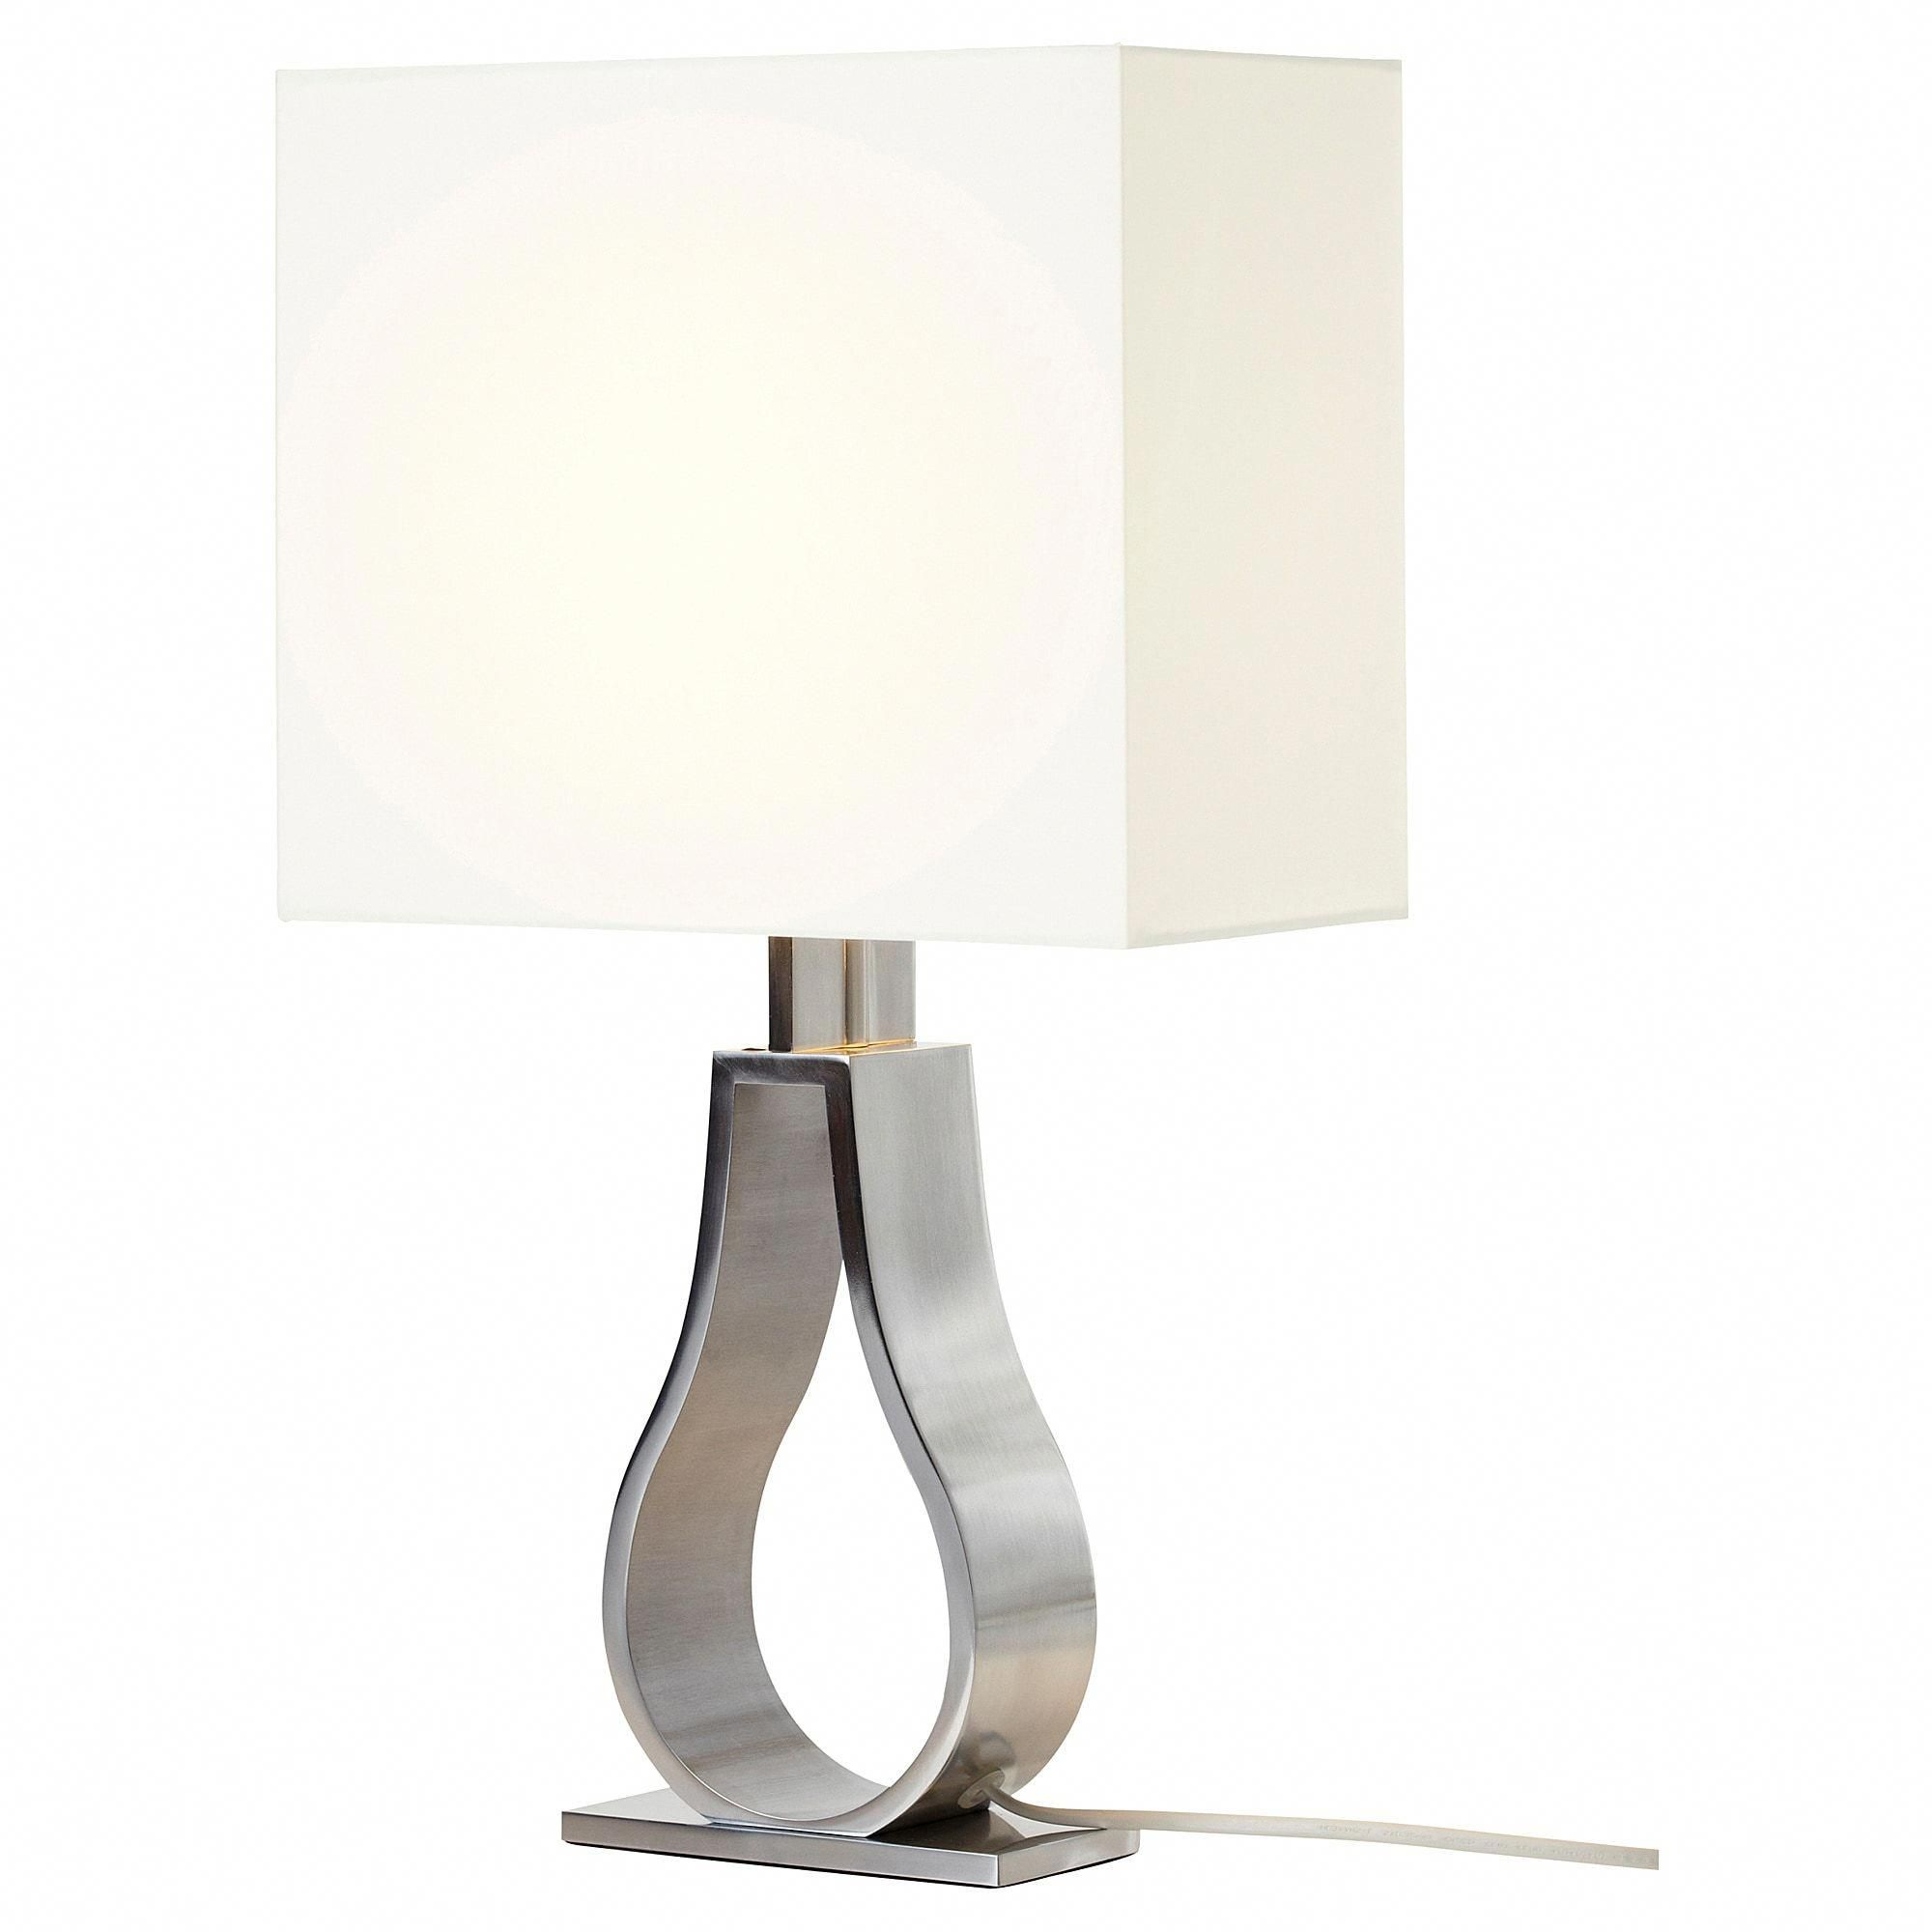 Ikea Klabb Off White Nickel Plated Table Lamp With Led Bulb Hanginglamps With Images Lamp Table Lamp Modern Lamp